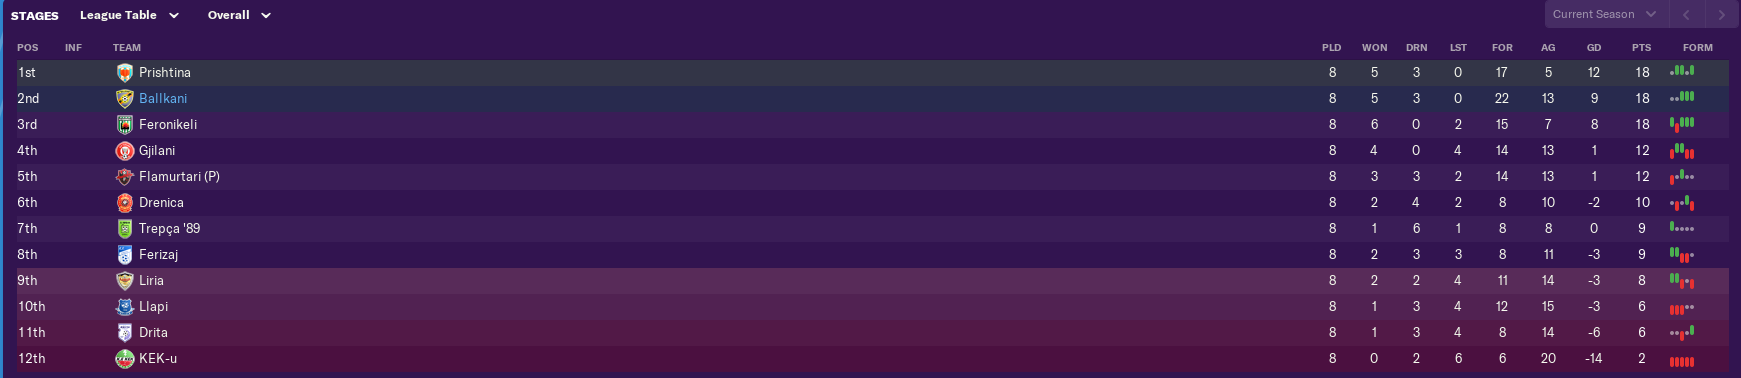 september-league-table.png